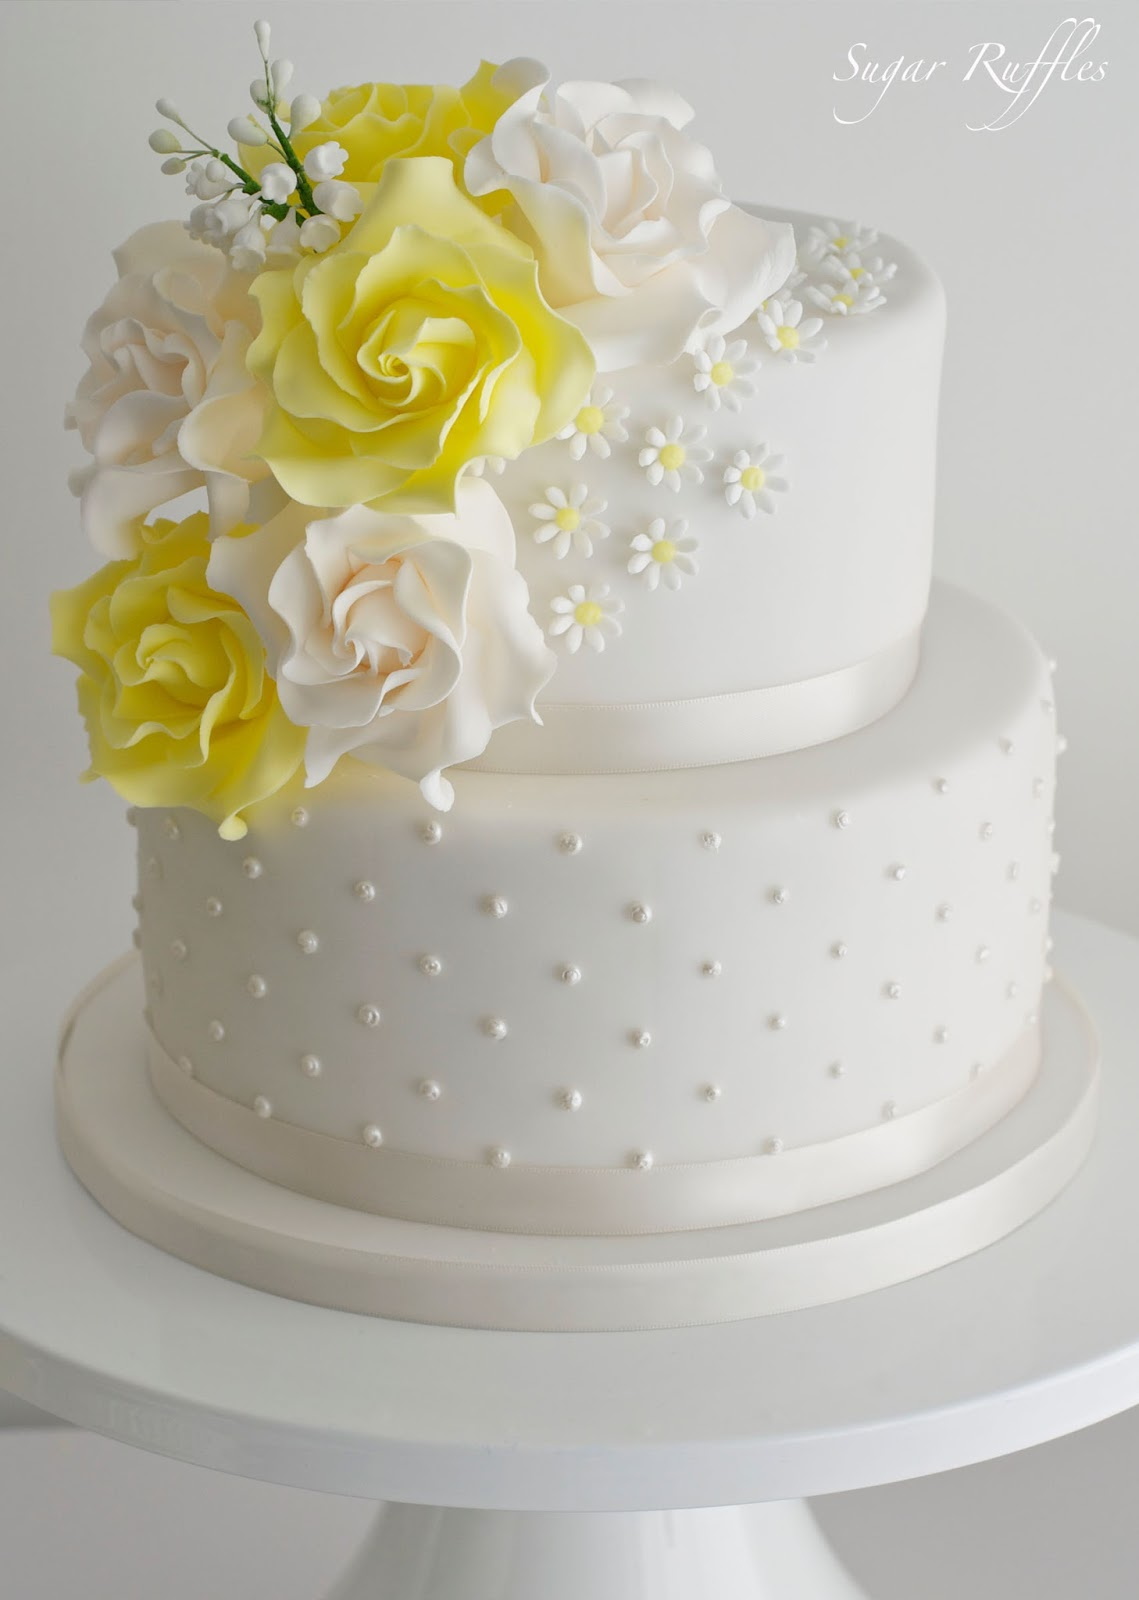 Exciting Yellow and White Wedding Cake Images Design Ideas – Dievoon